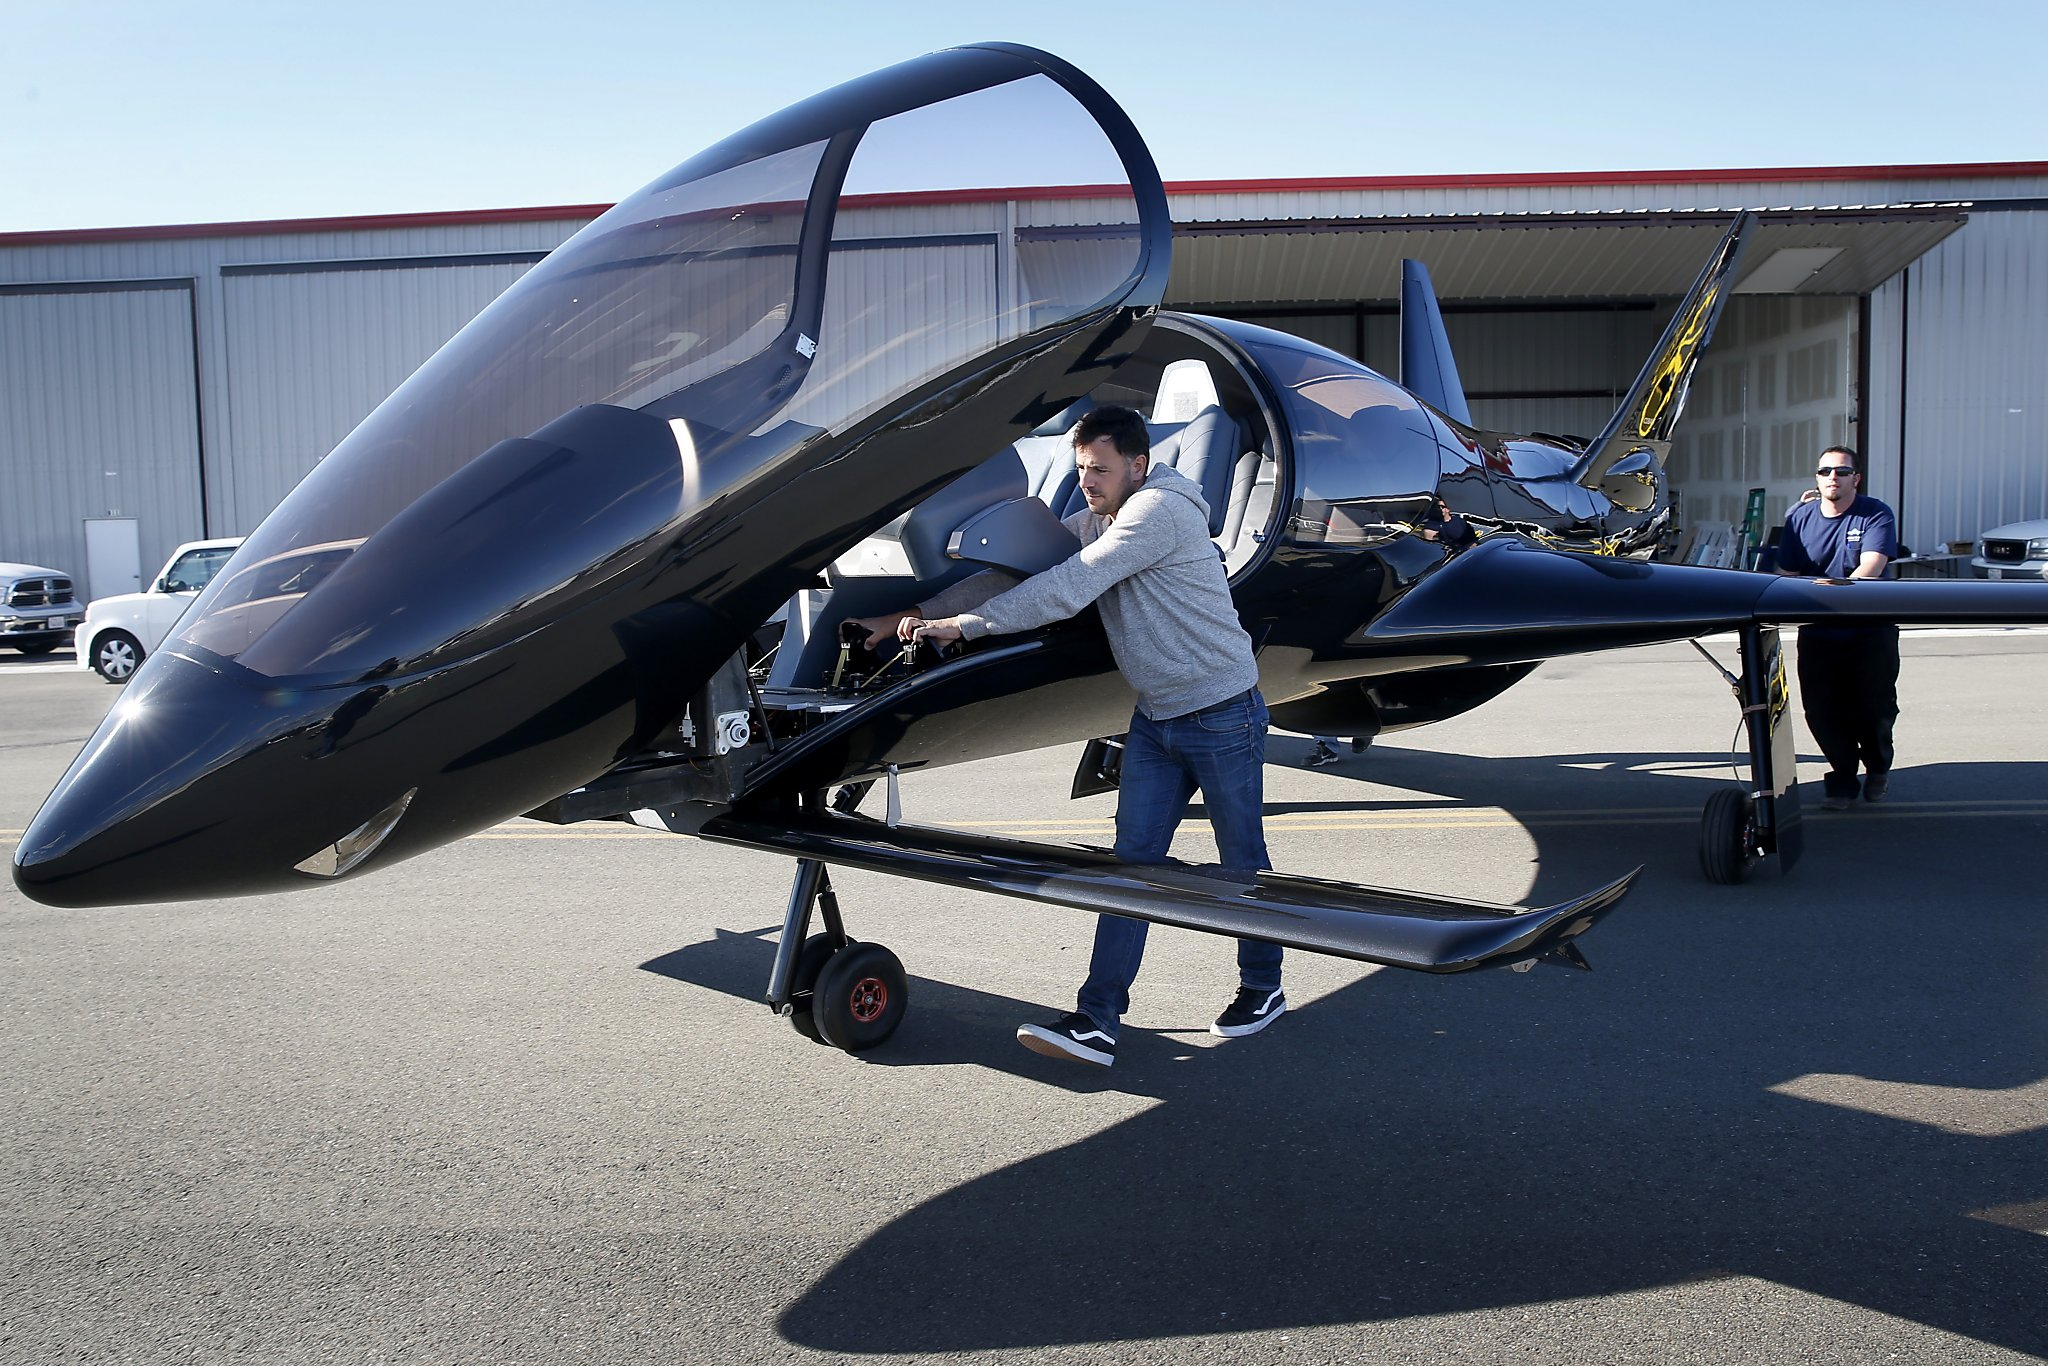 S F Startup Cobalt Launches Sleek Private Planes